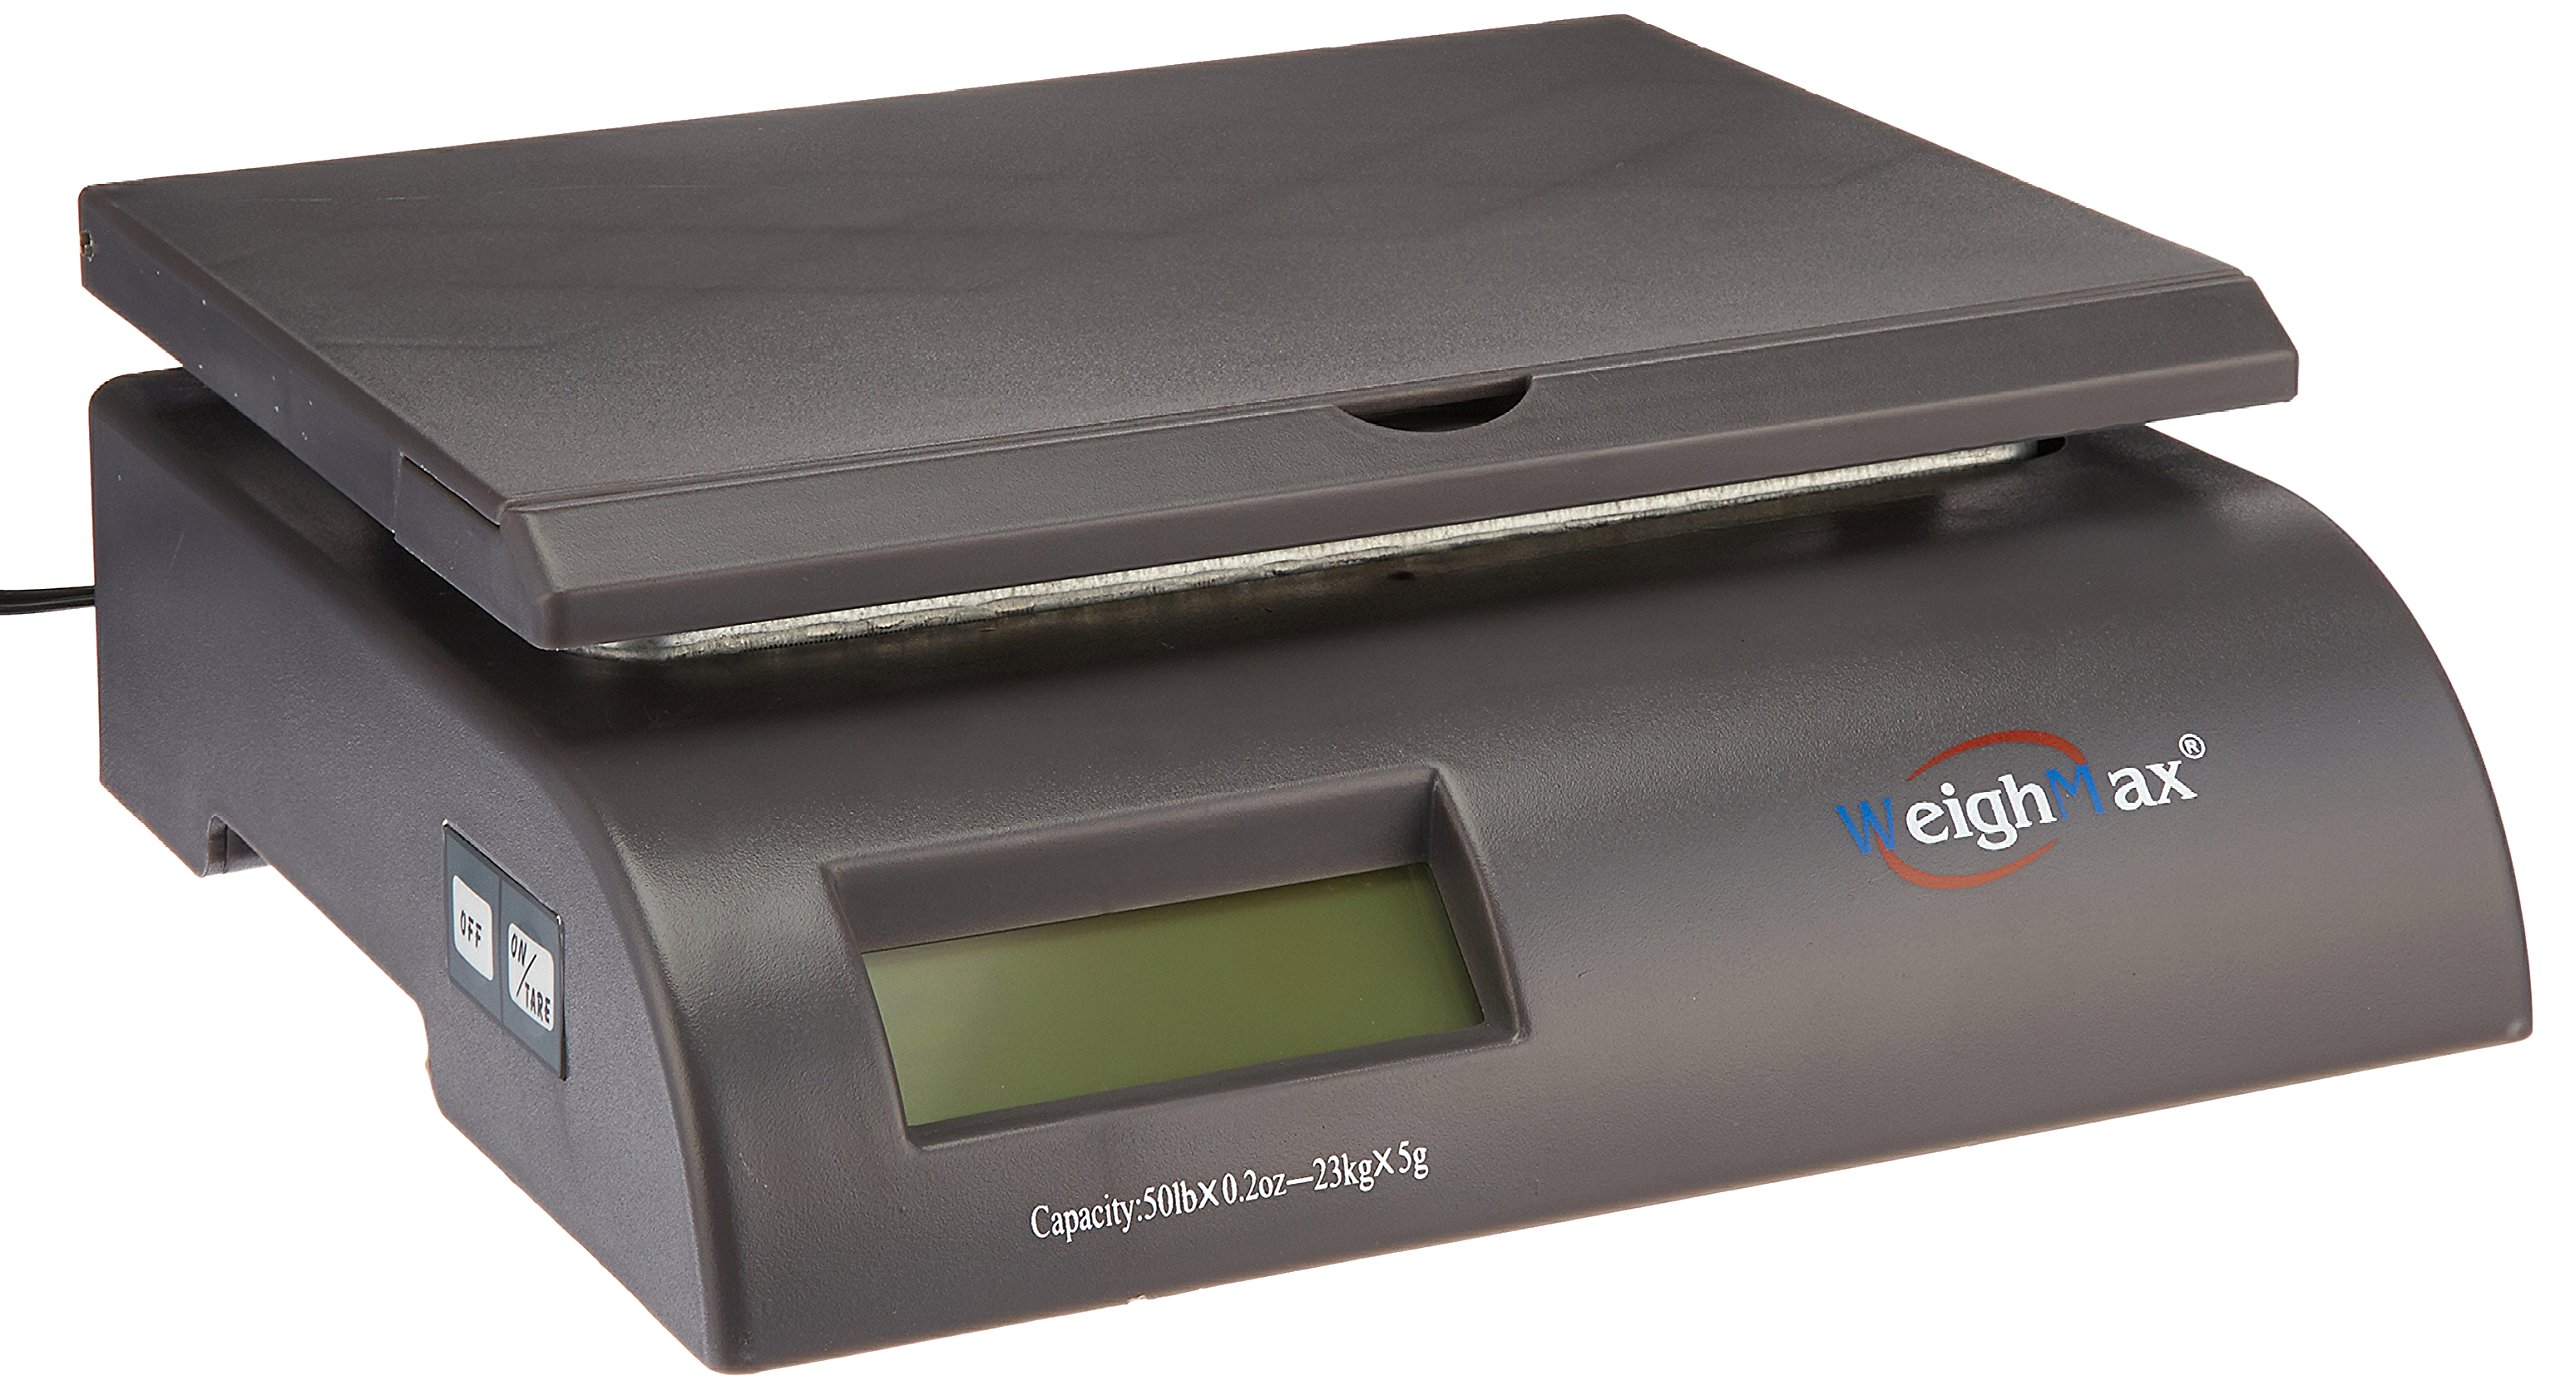 Weighmax Capacity Postal Shipping Scale, Battery and AC Adapter Included, Gray (W-2822-50-GRAY)